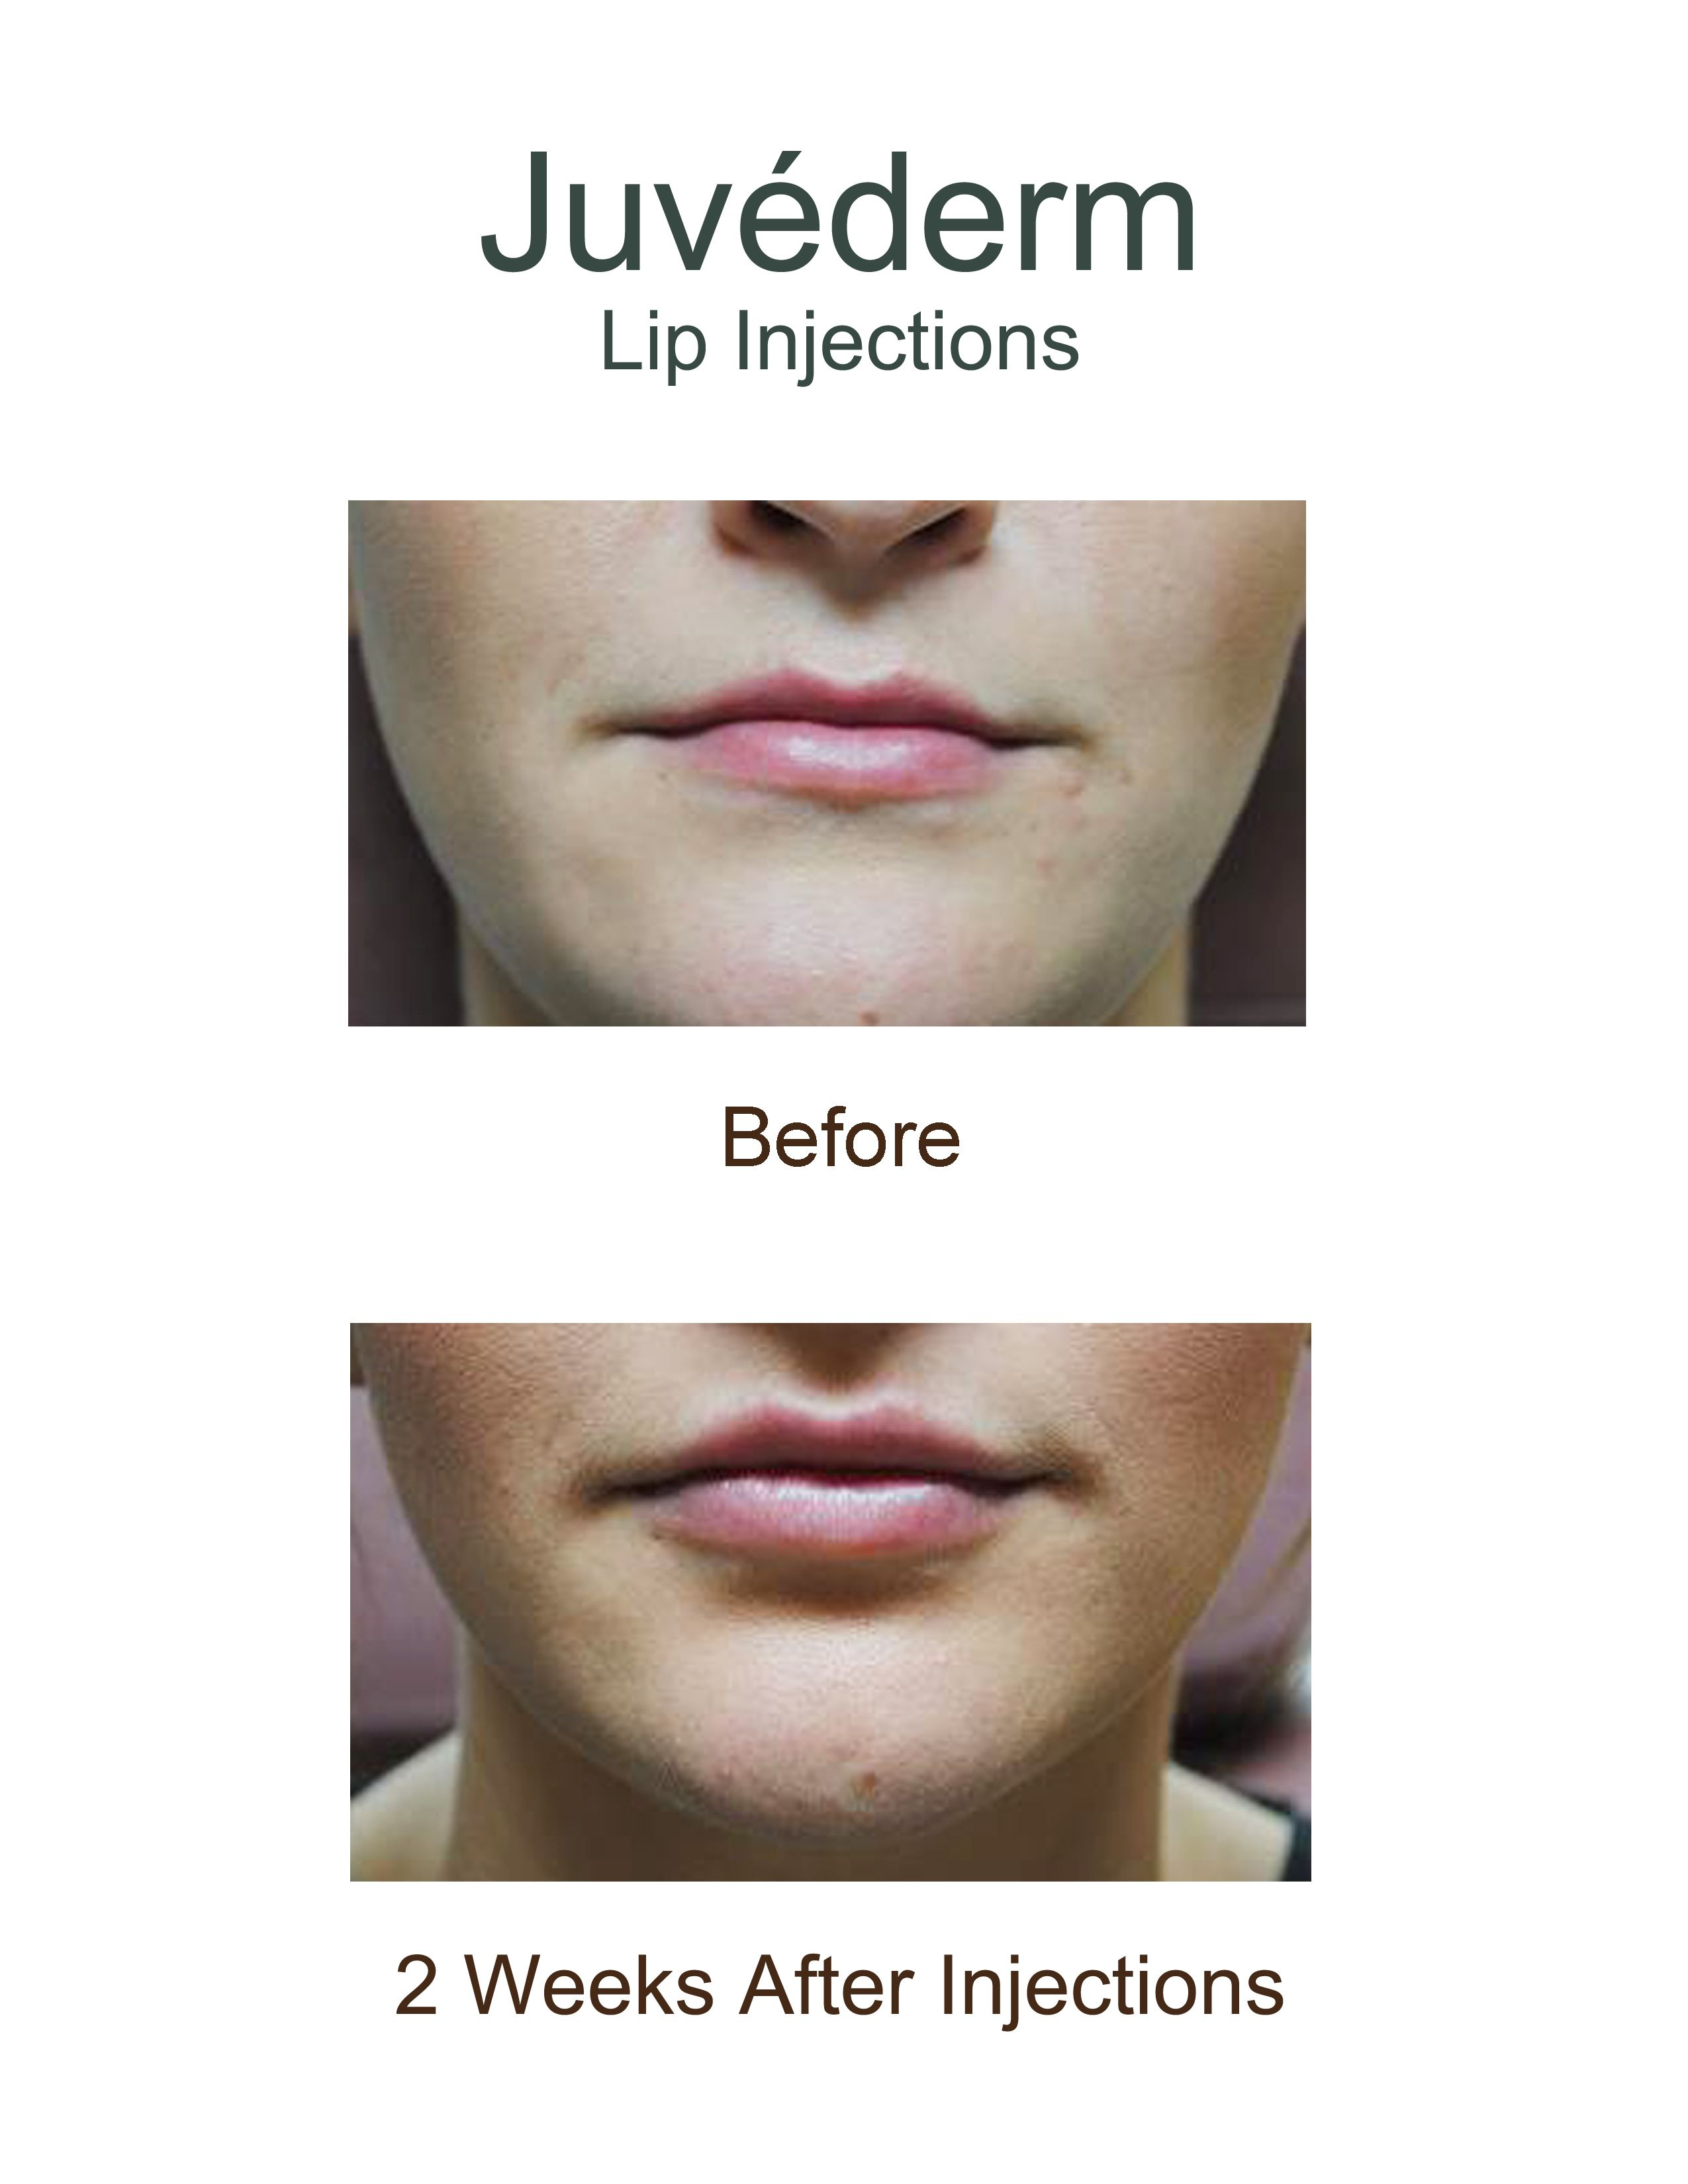 Before and after Juvederm, a dermal filler, lip injections